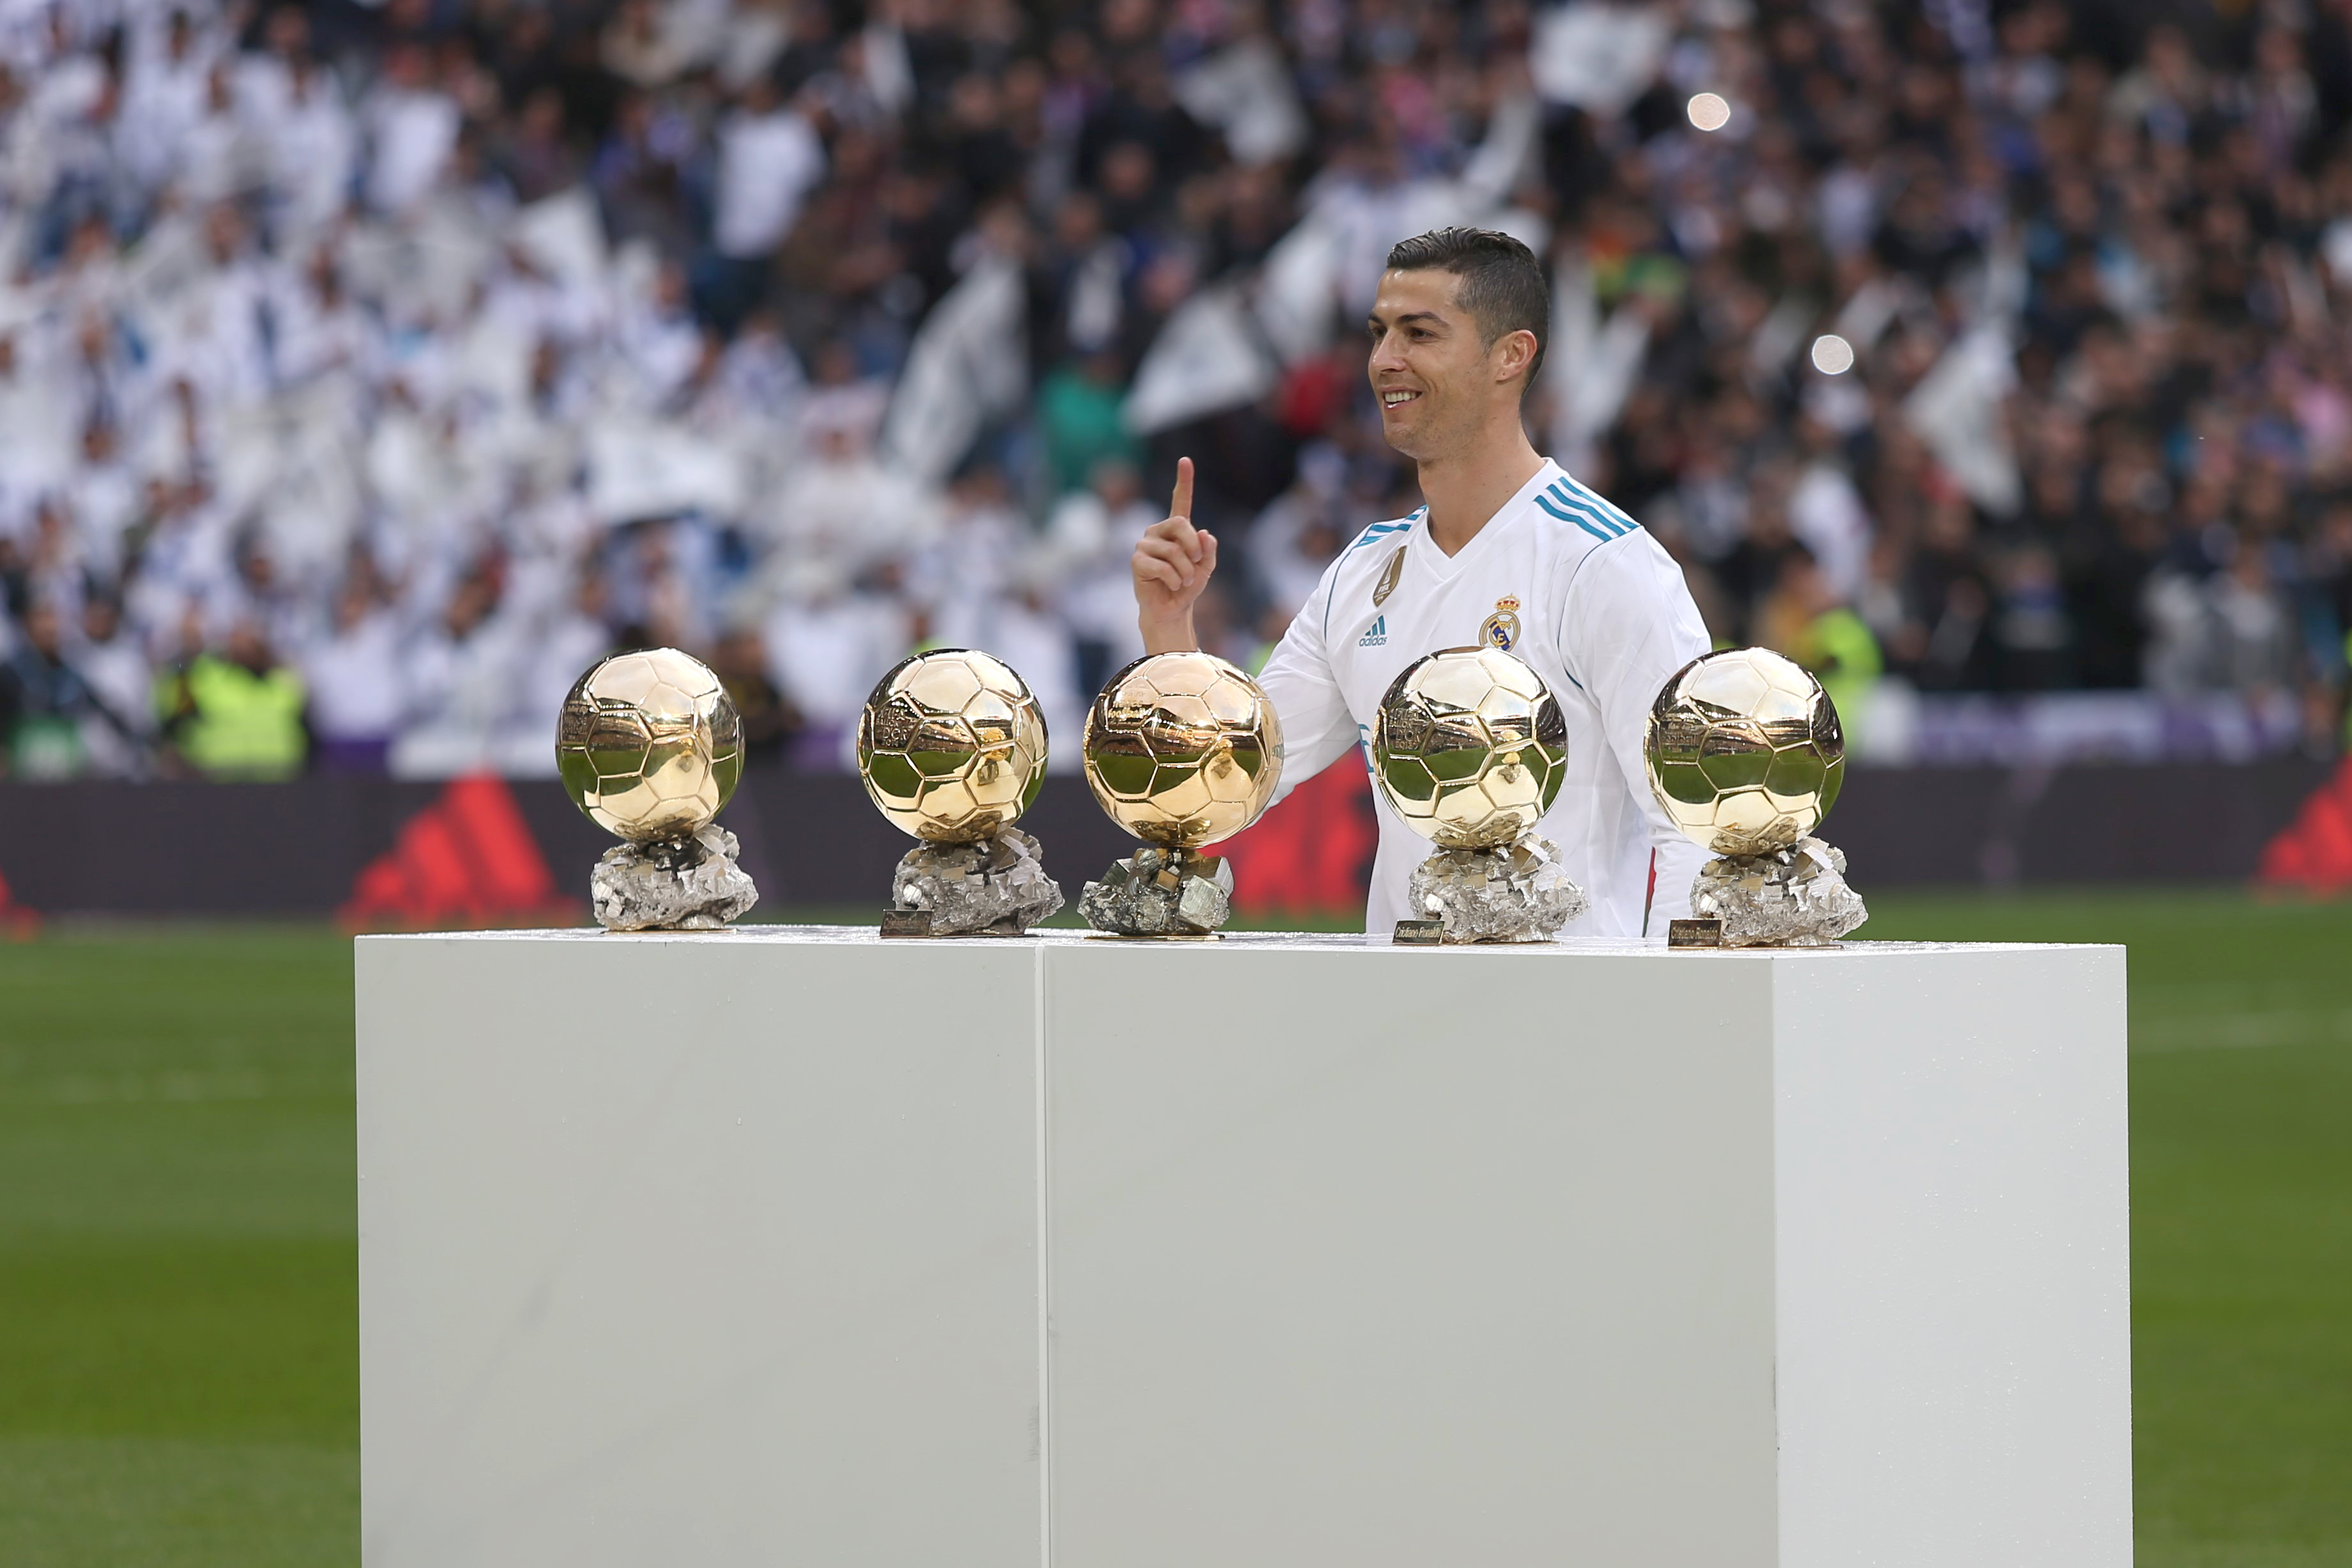 Are five trophies not enough? Image: PA Images